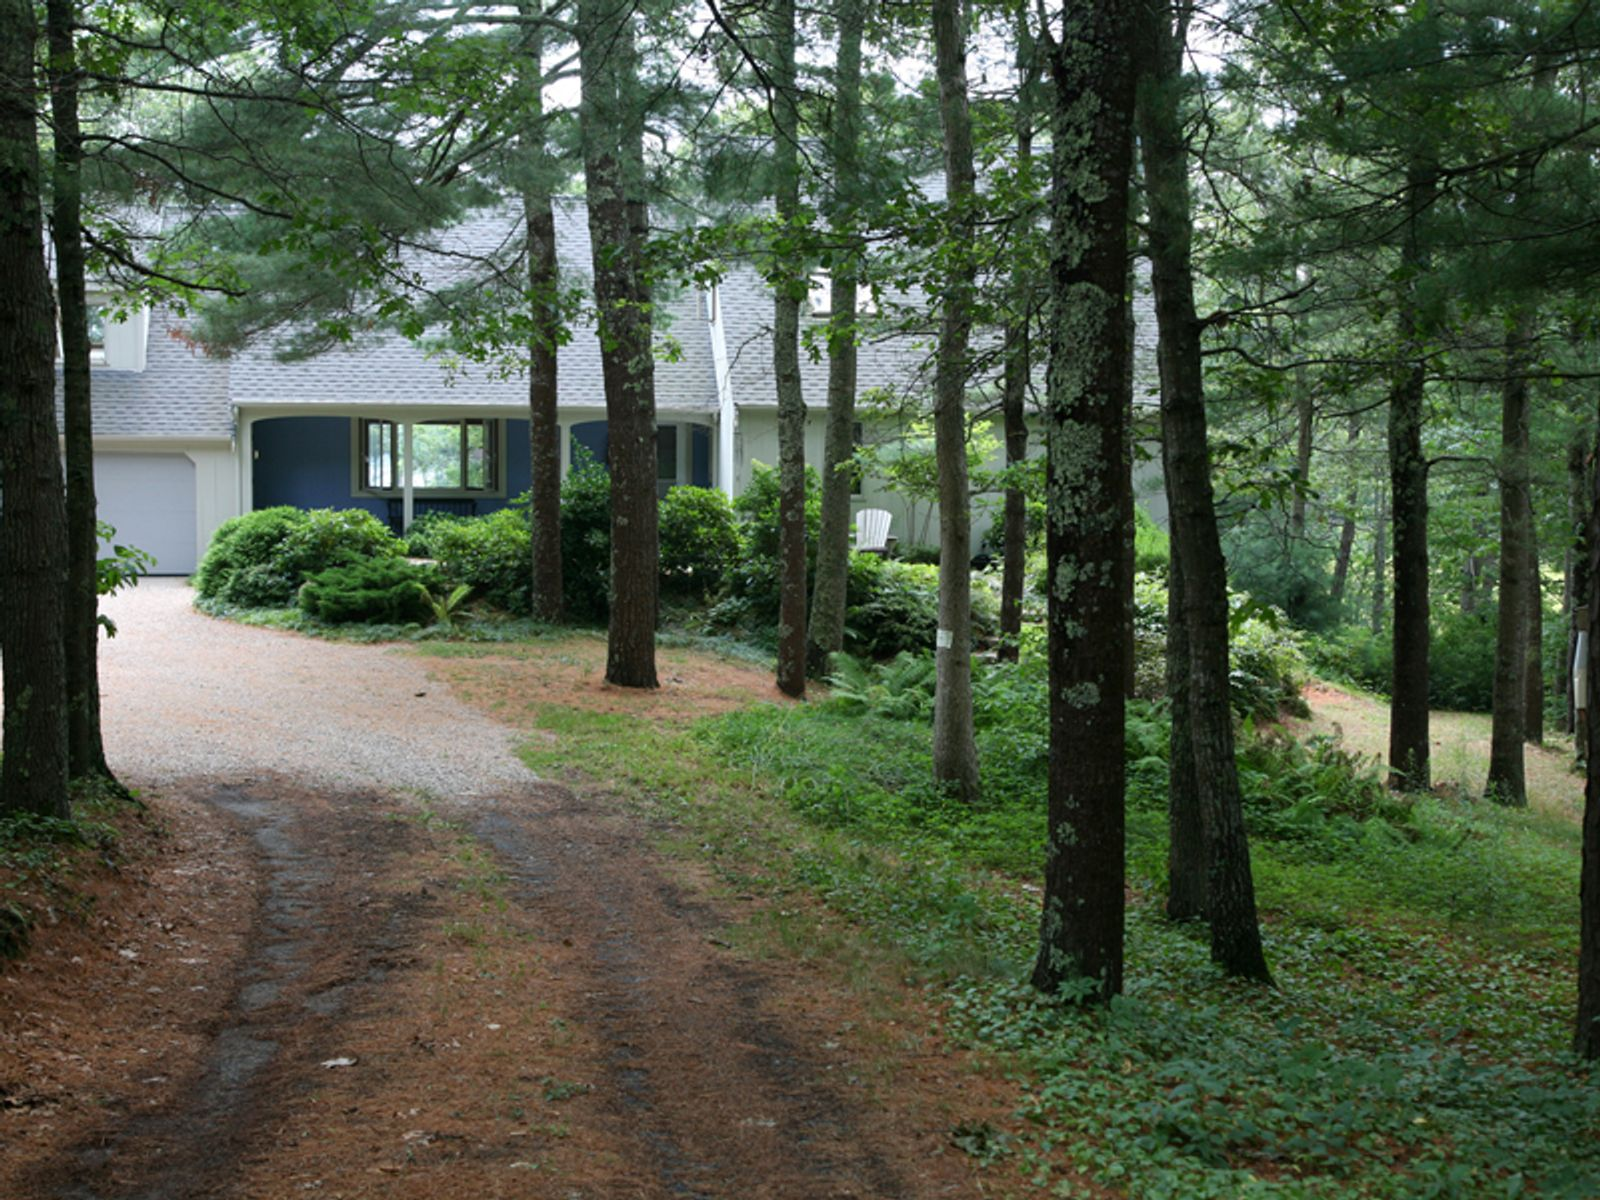 Meadow, Marsh and Water Views, Falmouth MA Single Family Home - Cape Cod Real Estate